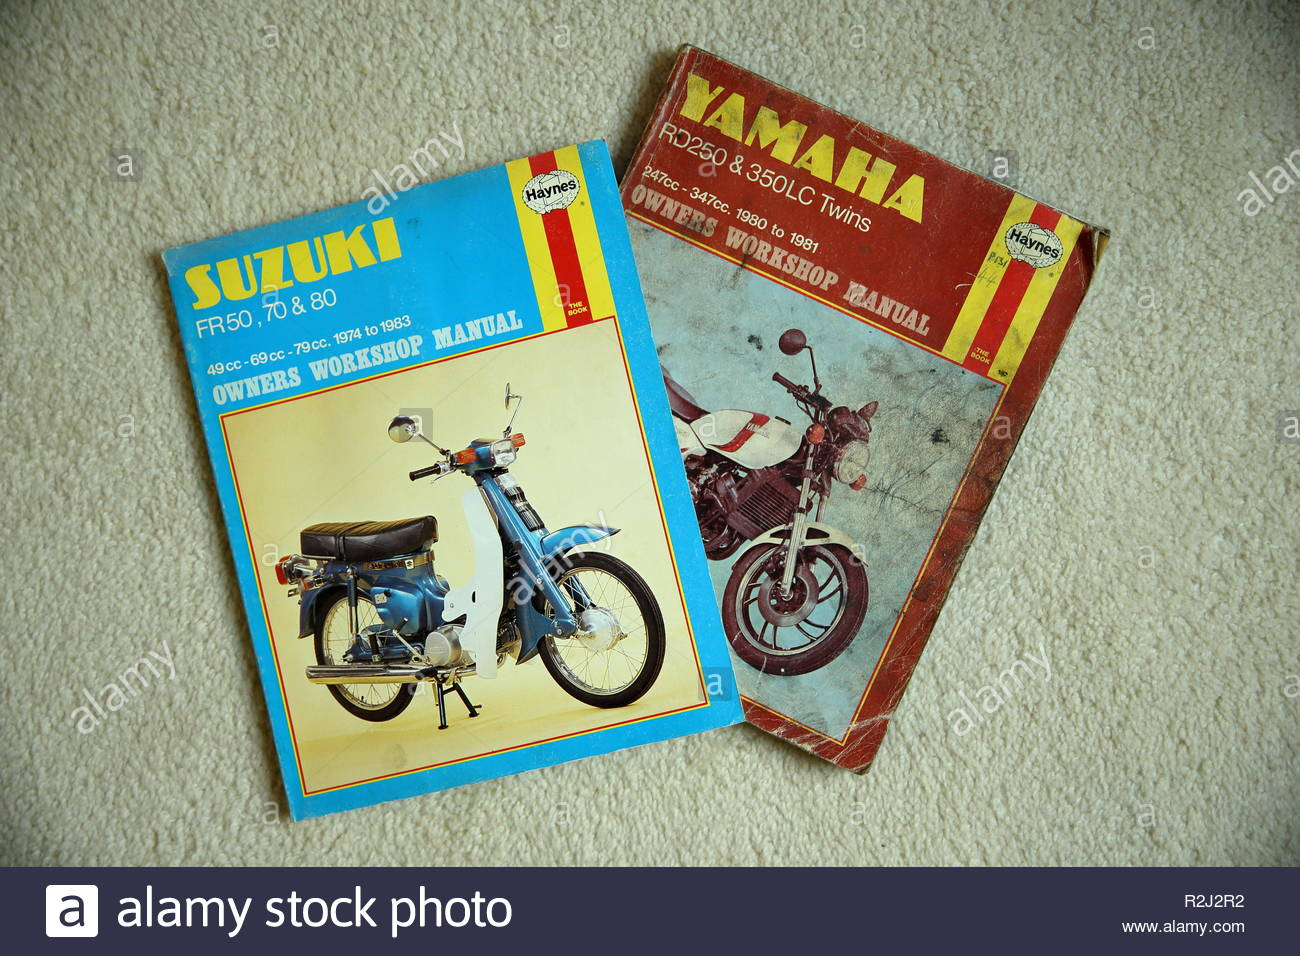 Two Haynes Owners Workshop Manuals, one for Suzuki FR50, 70 and 80, one